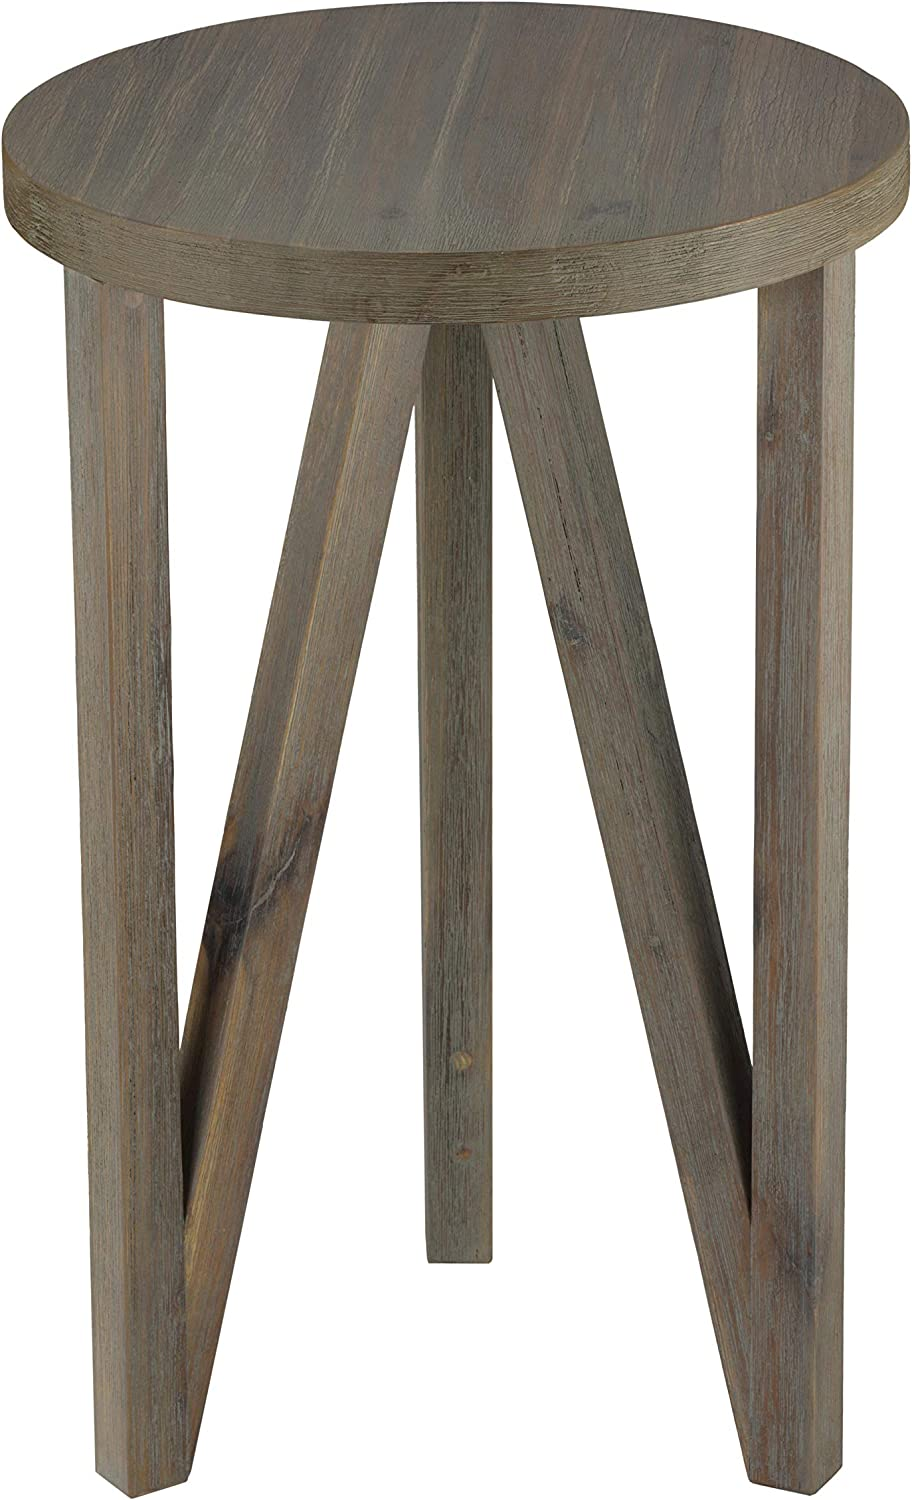 Cortesi Home Tobin End Table in Solid Wood